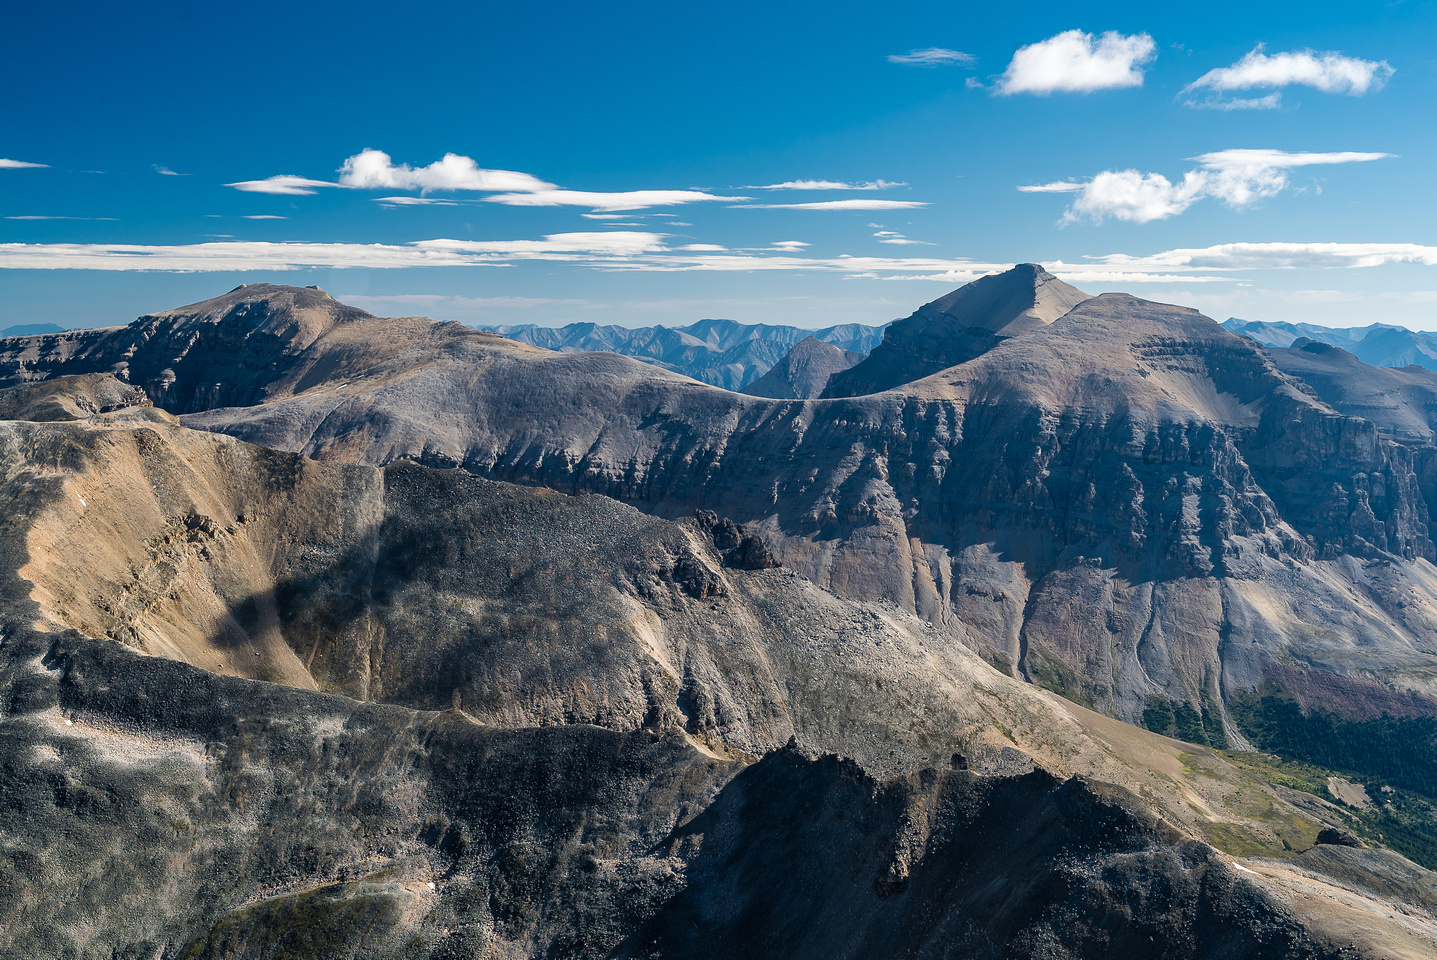 Two large peaks to the east are Peskett (L) and Louden (R) and are 3124m and 3221m respectively.